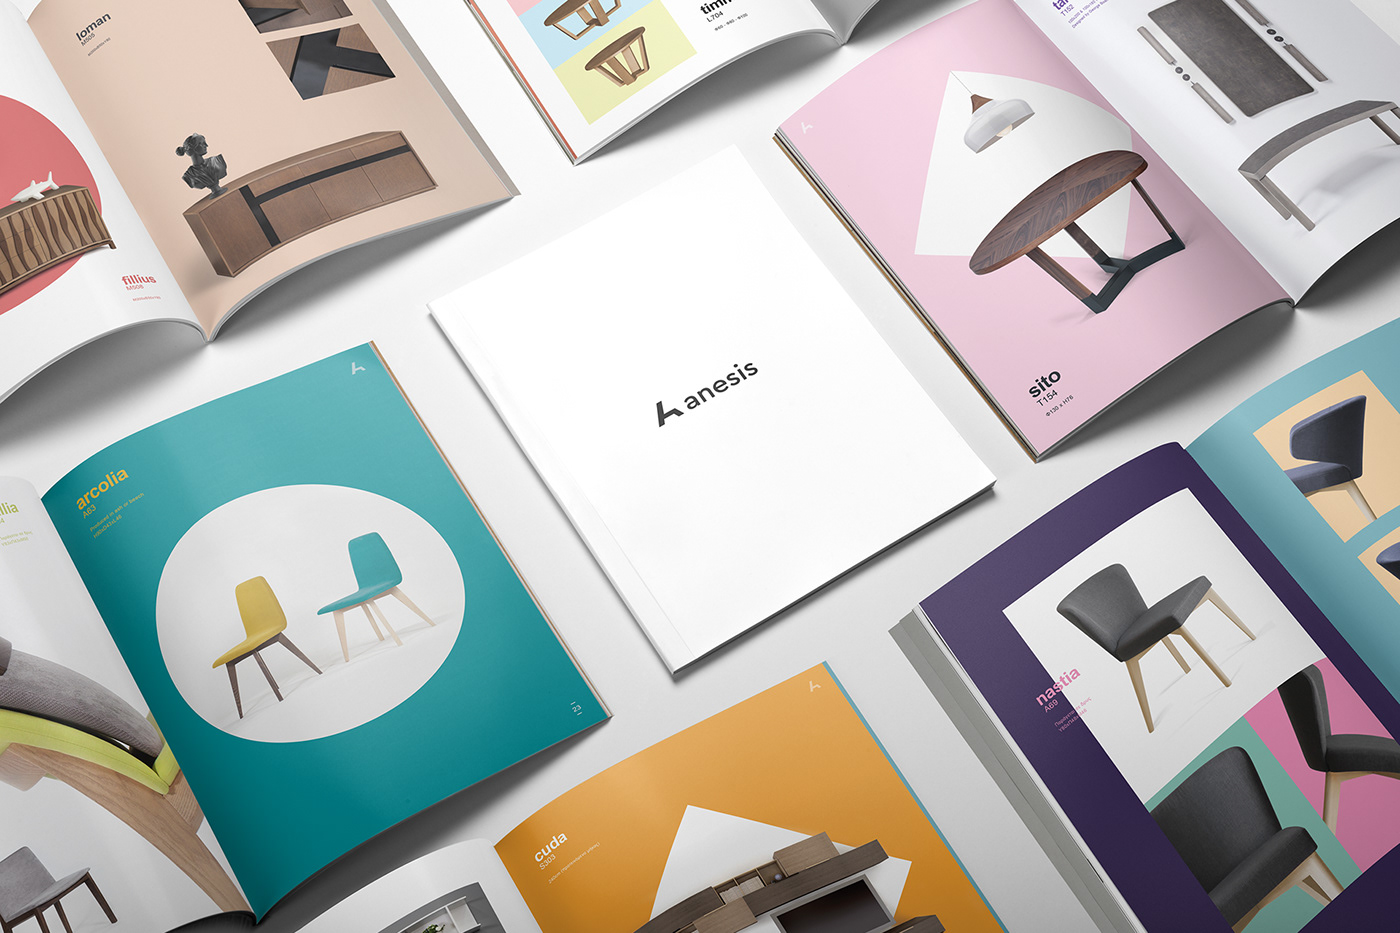 stationery,book,Booklet,Catalogue,chairs,craft,furniture,monogram,tables,wood